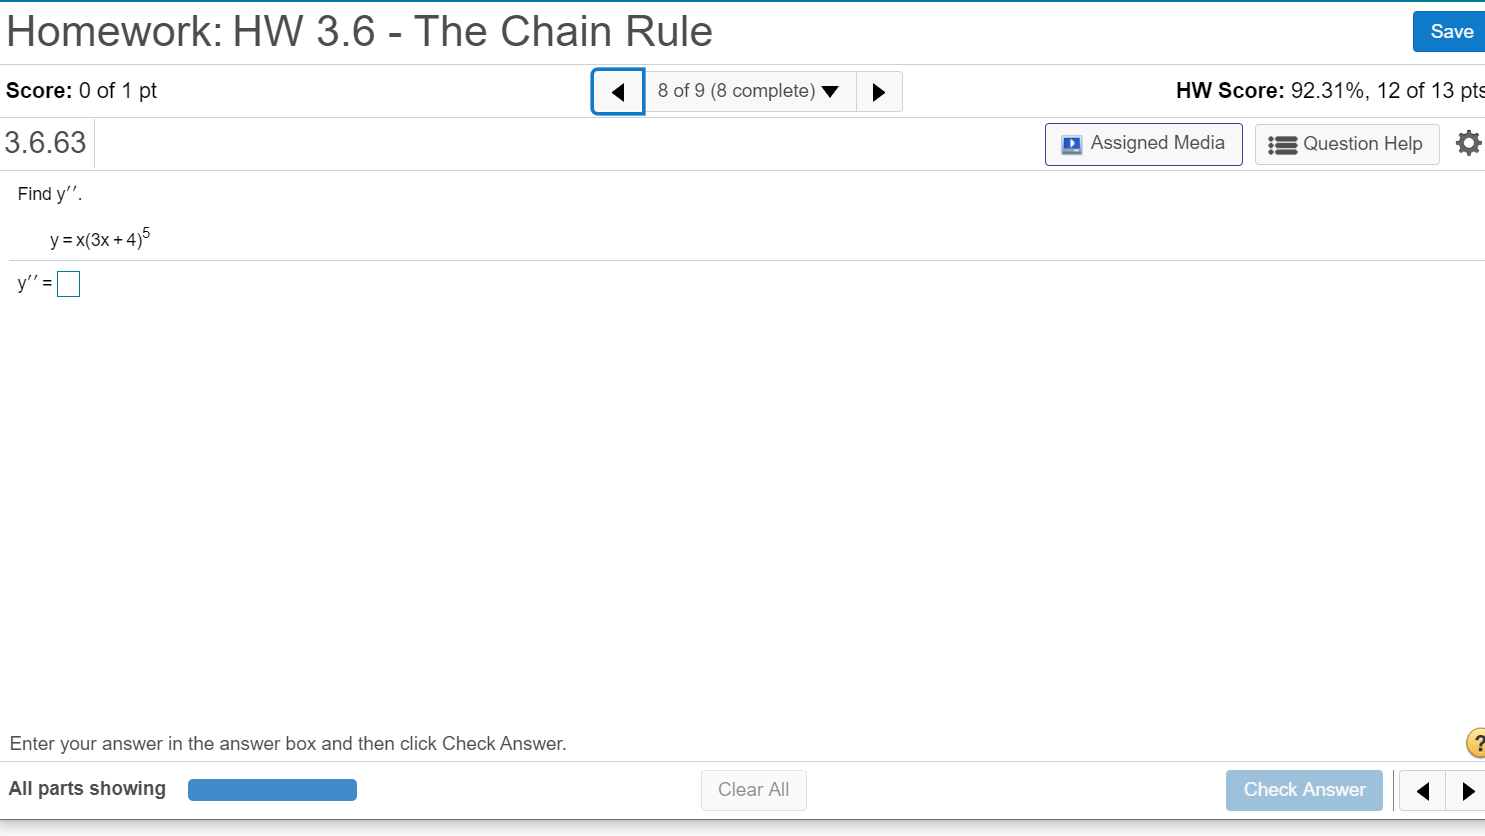 Homework: HW 3.6- The Chain Reuters Save Homework: HW 3.6 - The Chain Rule Score: 0 of 1 pt 8 of 9 (8 complete) HW Score: 92.